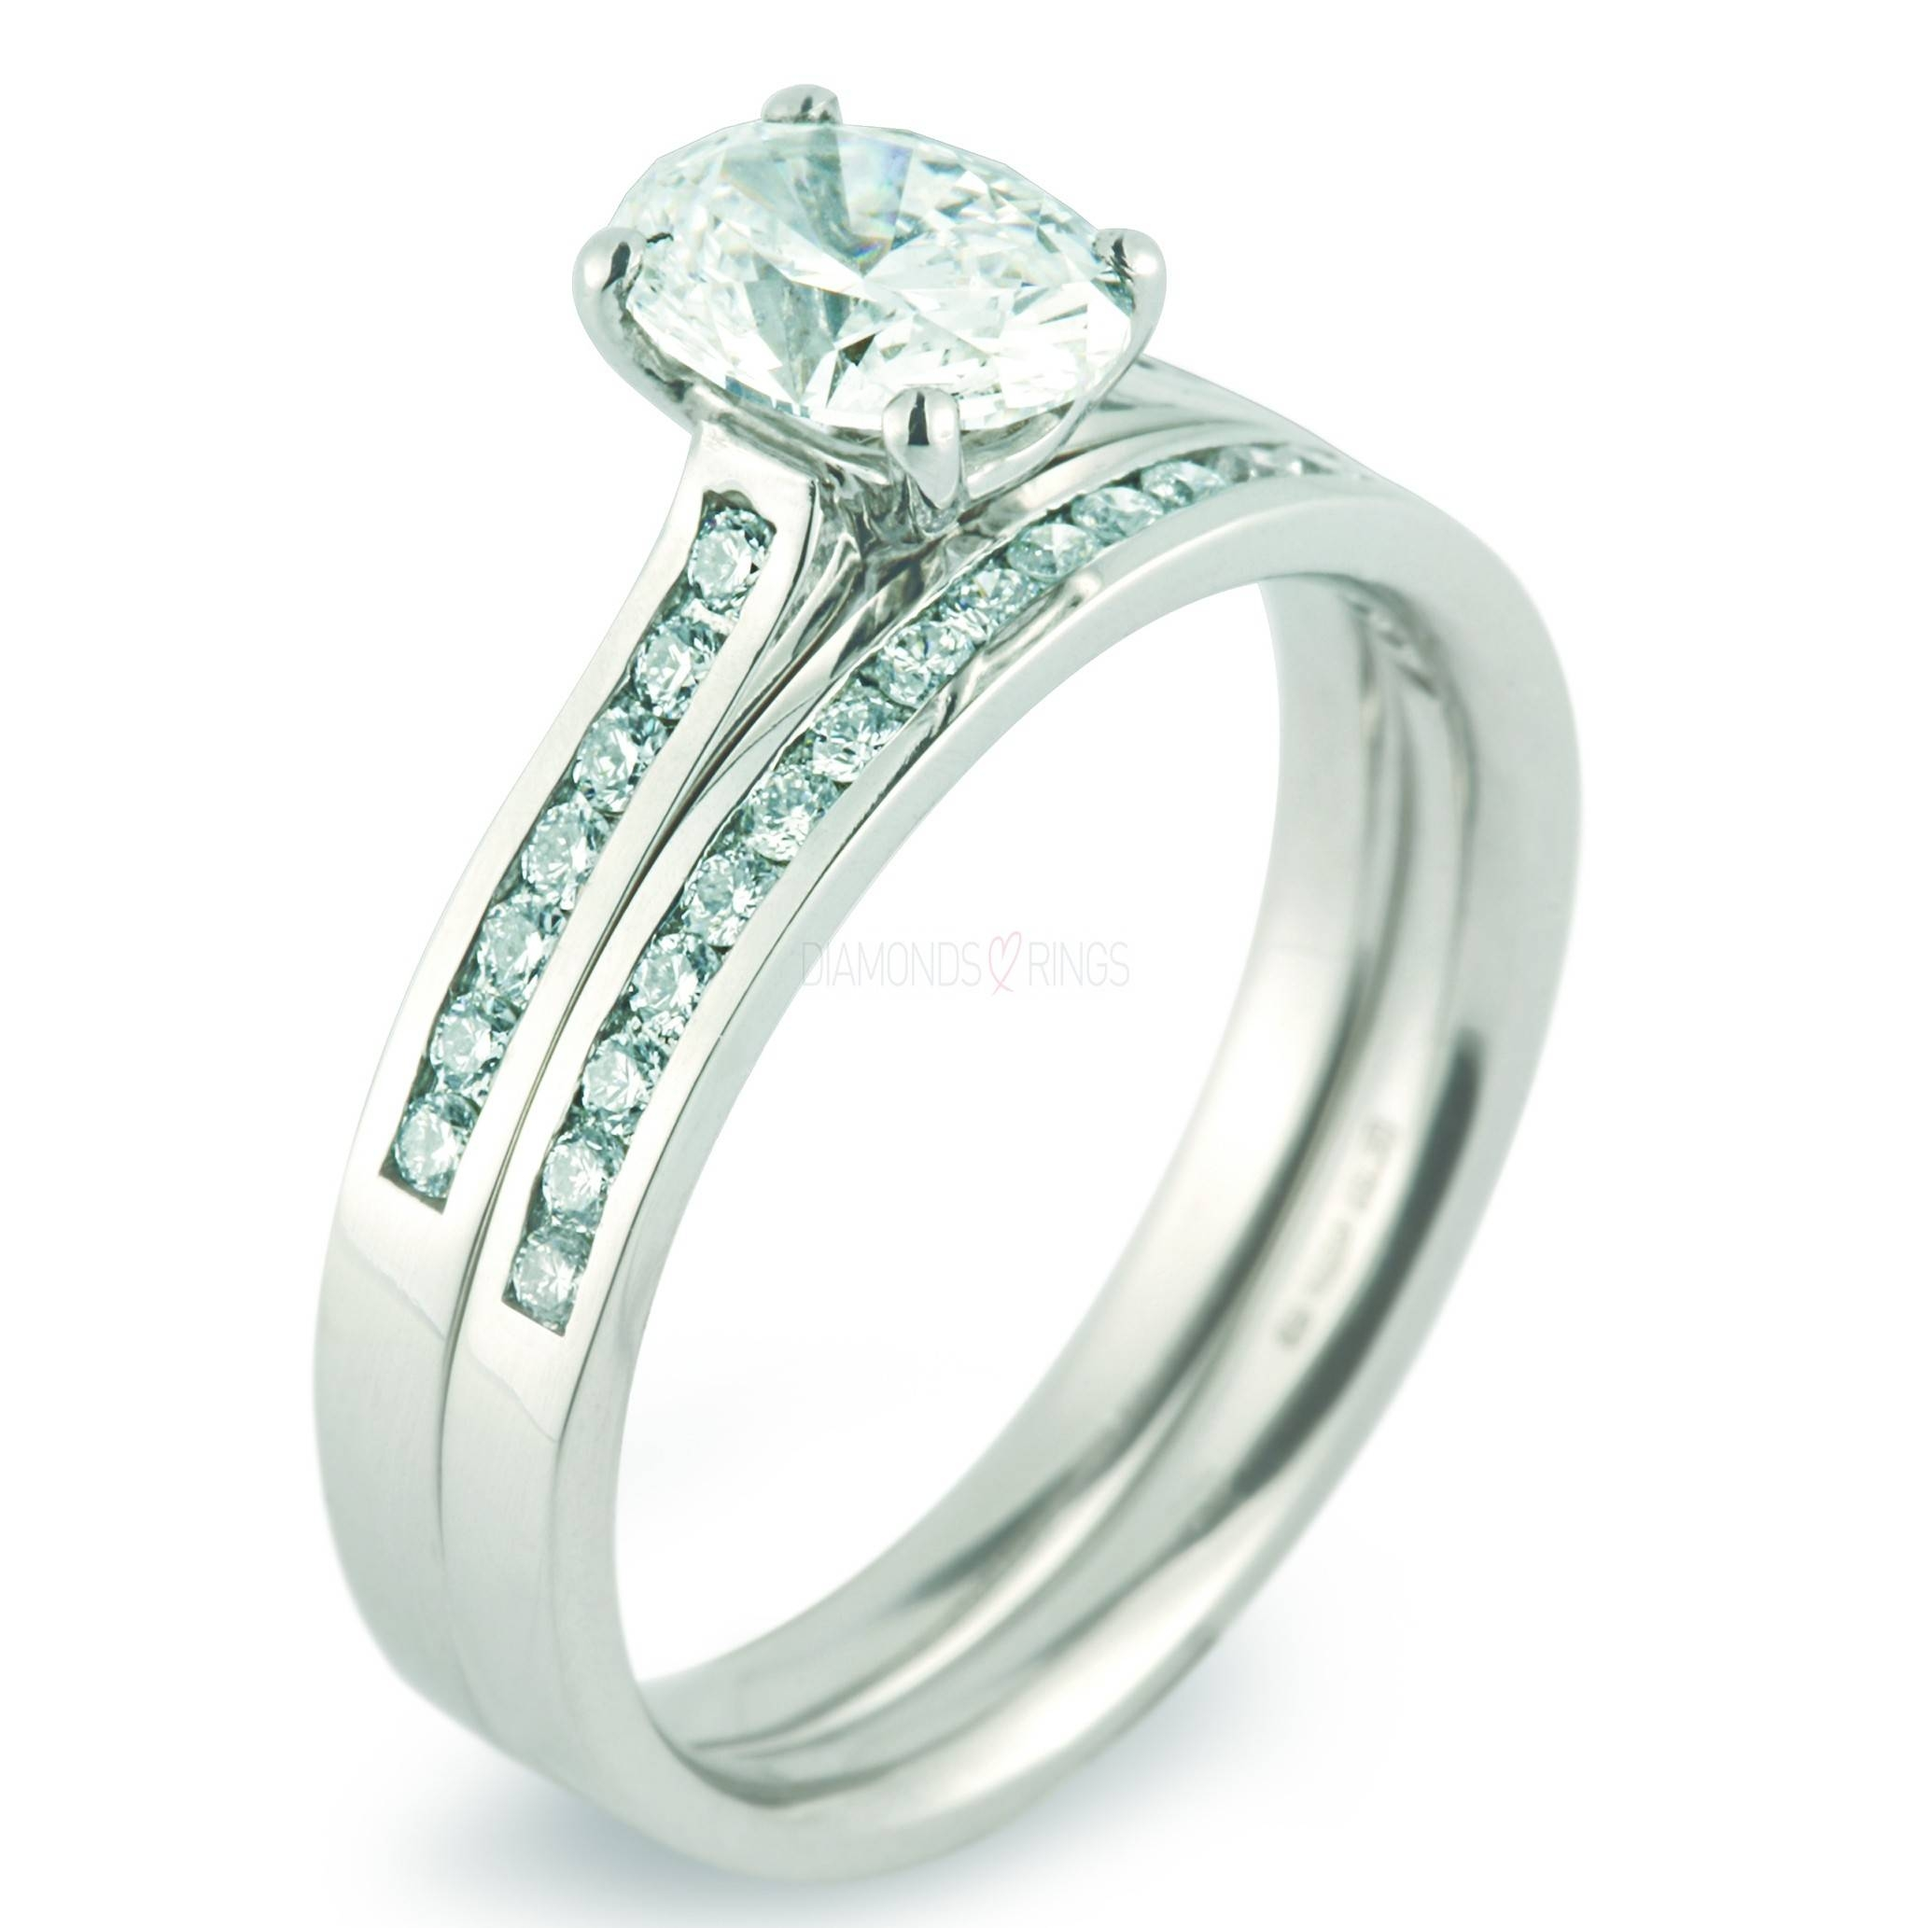 Oval Cut Bridal Set With Diamond Shoulders And Channel Set Wedding Within Wedding Rings With Diamonds (Gallery 3 of 15)